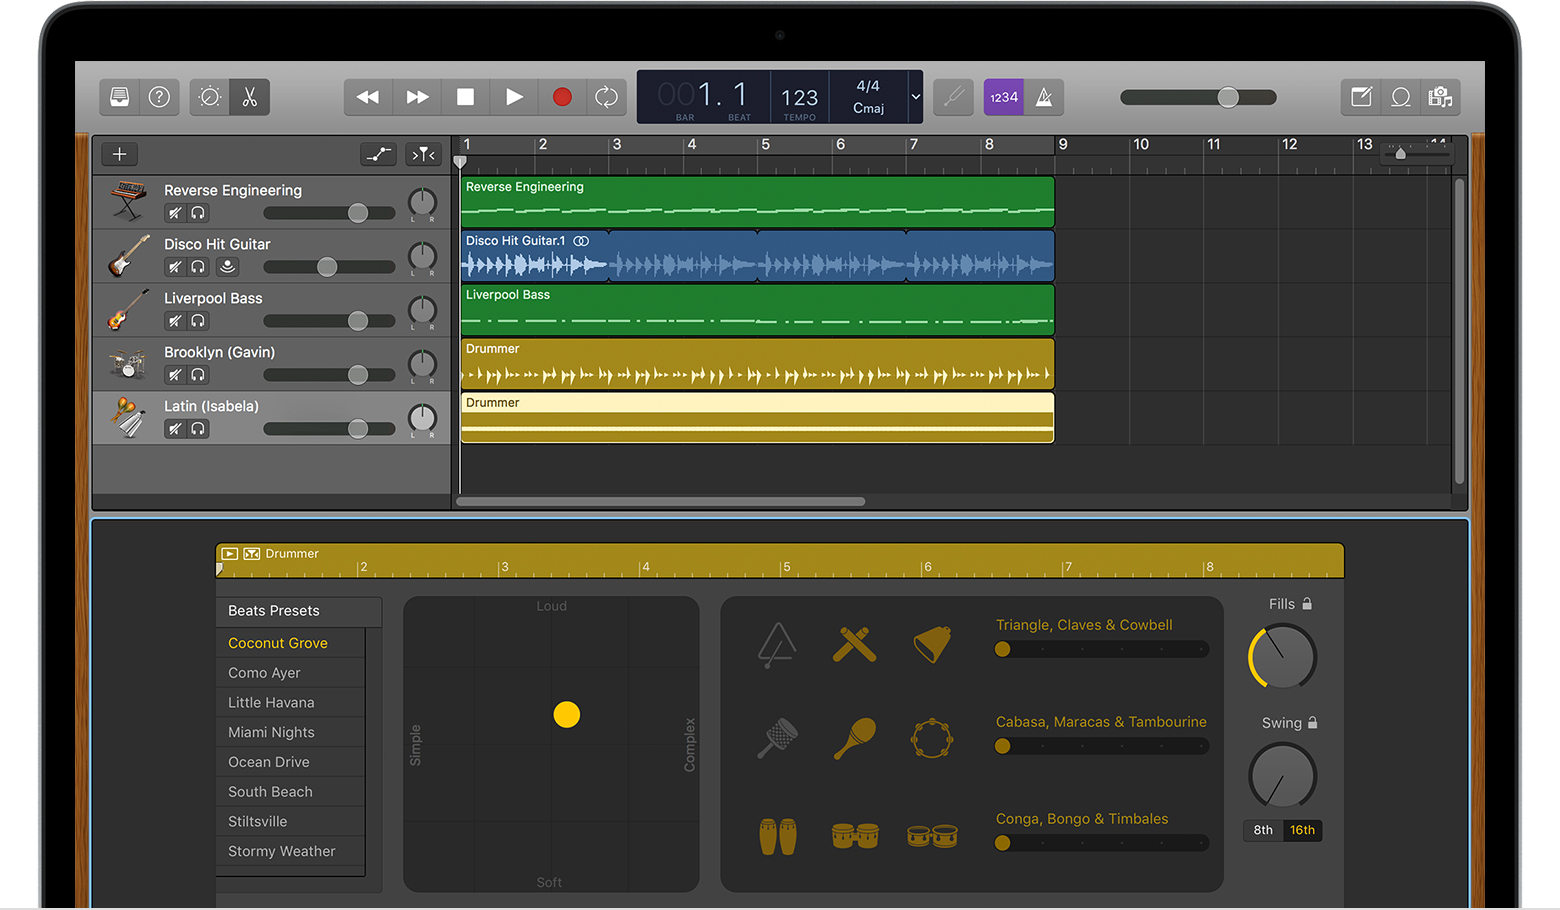 Work with percussionists in GarageBand for Mac - Apple Support